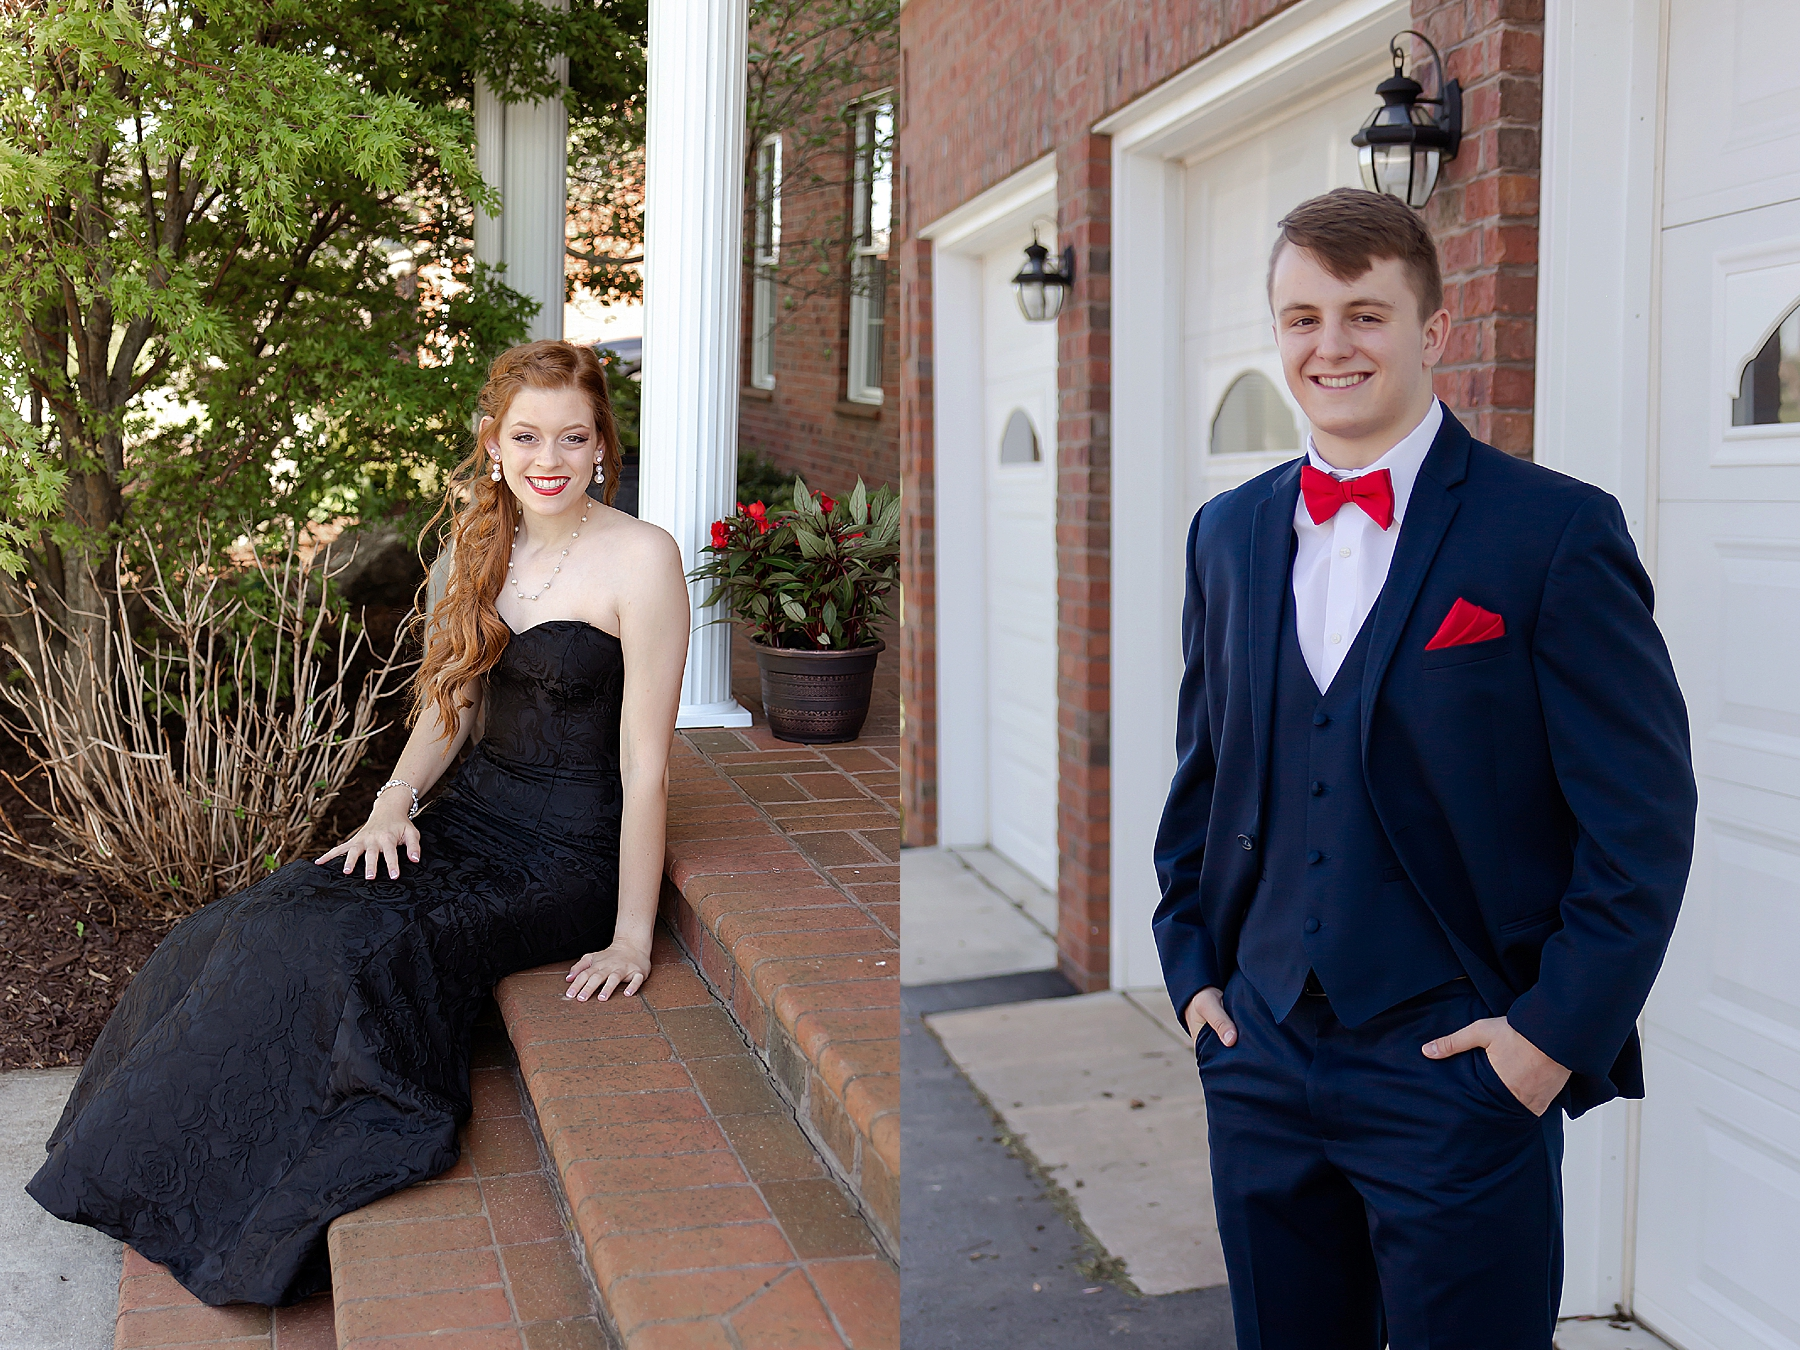 using open shade prom photos on the porch how to take good pictures kristina rose photography